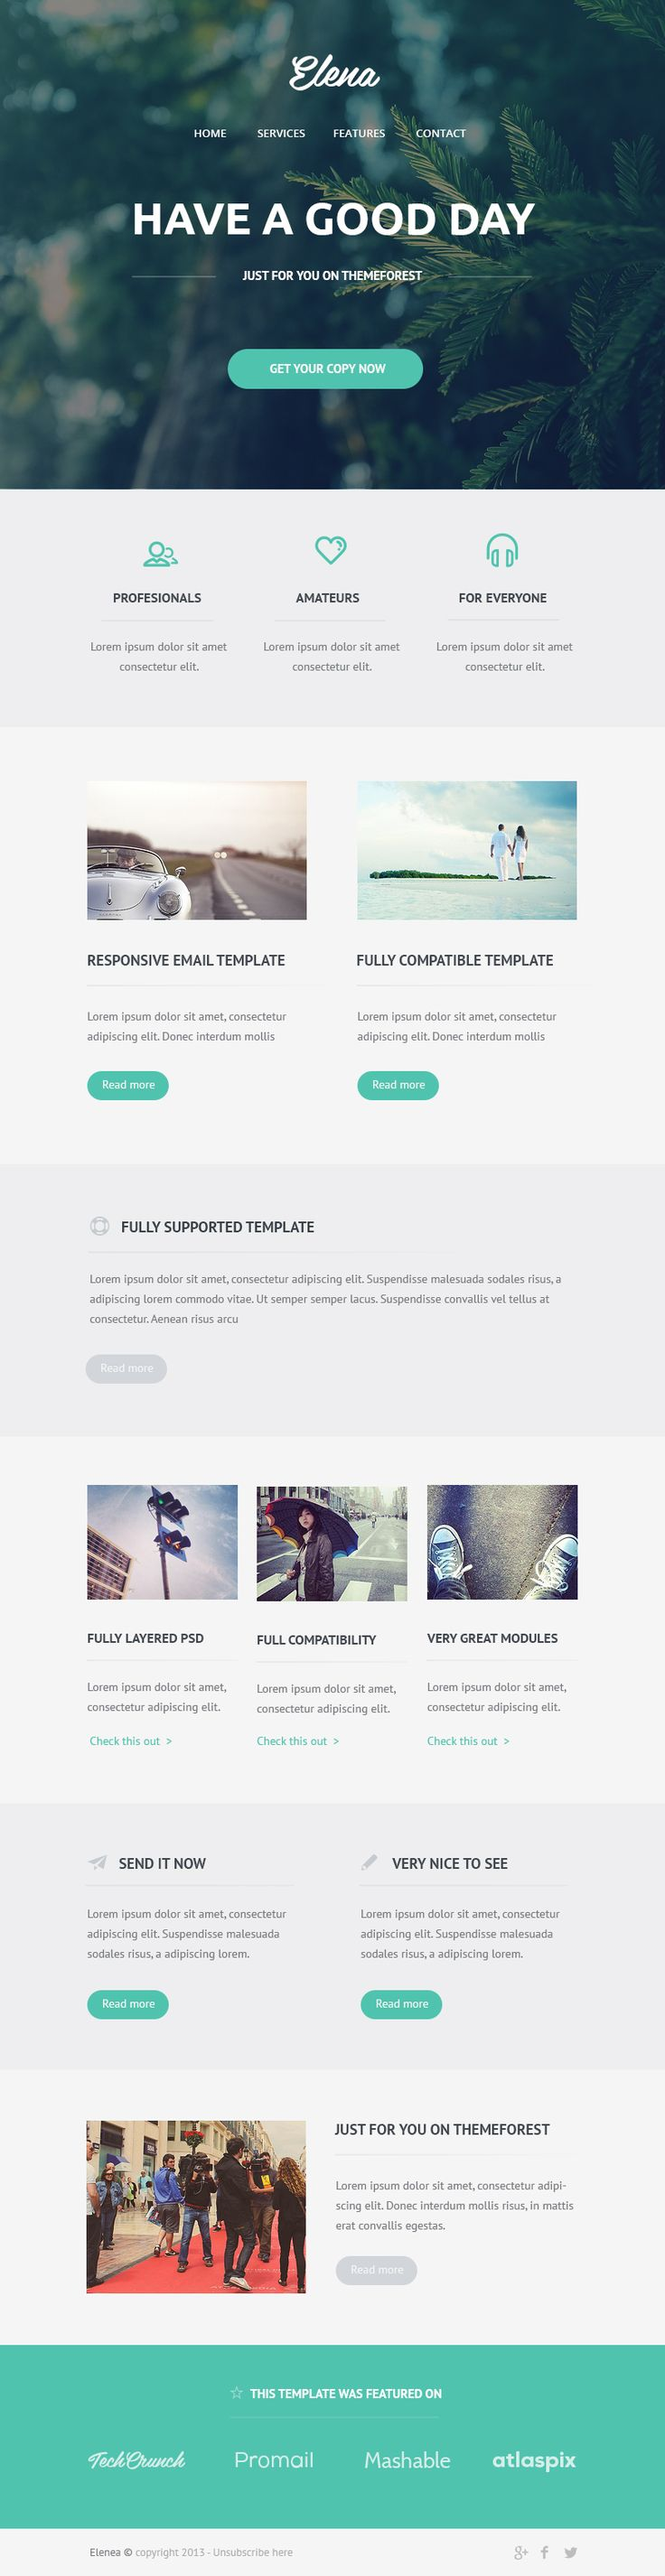 Flat, clean, minimal email psd theme download (free).